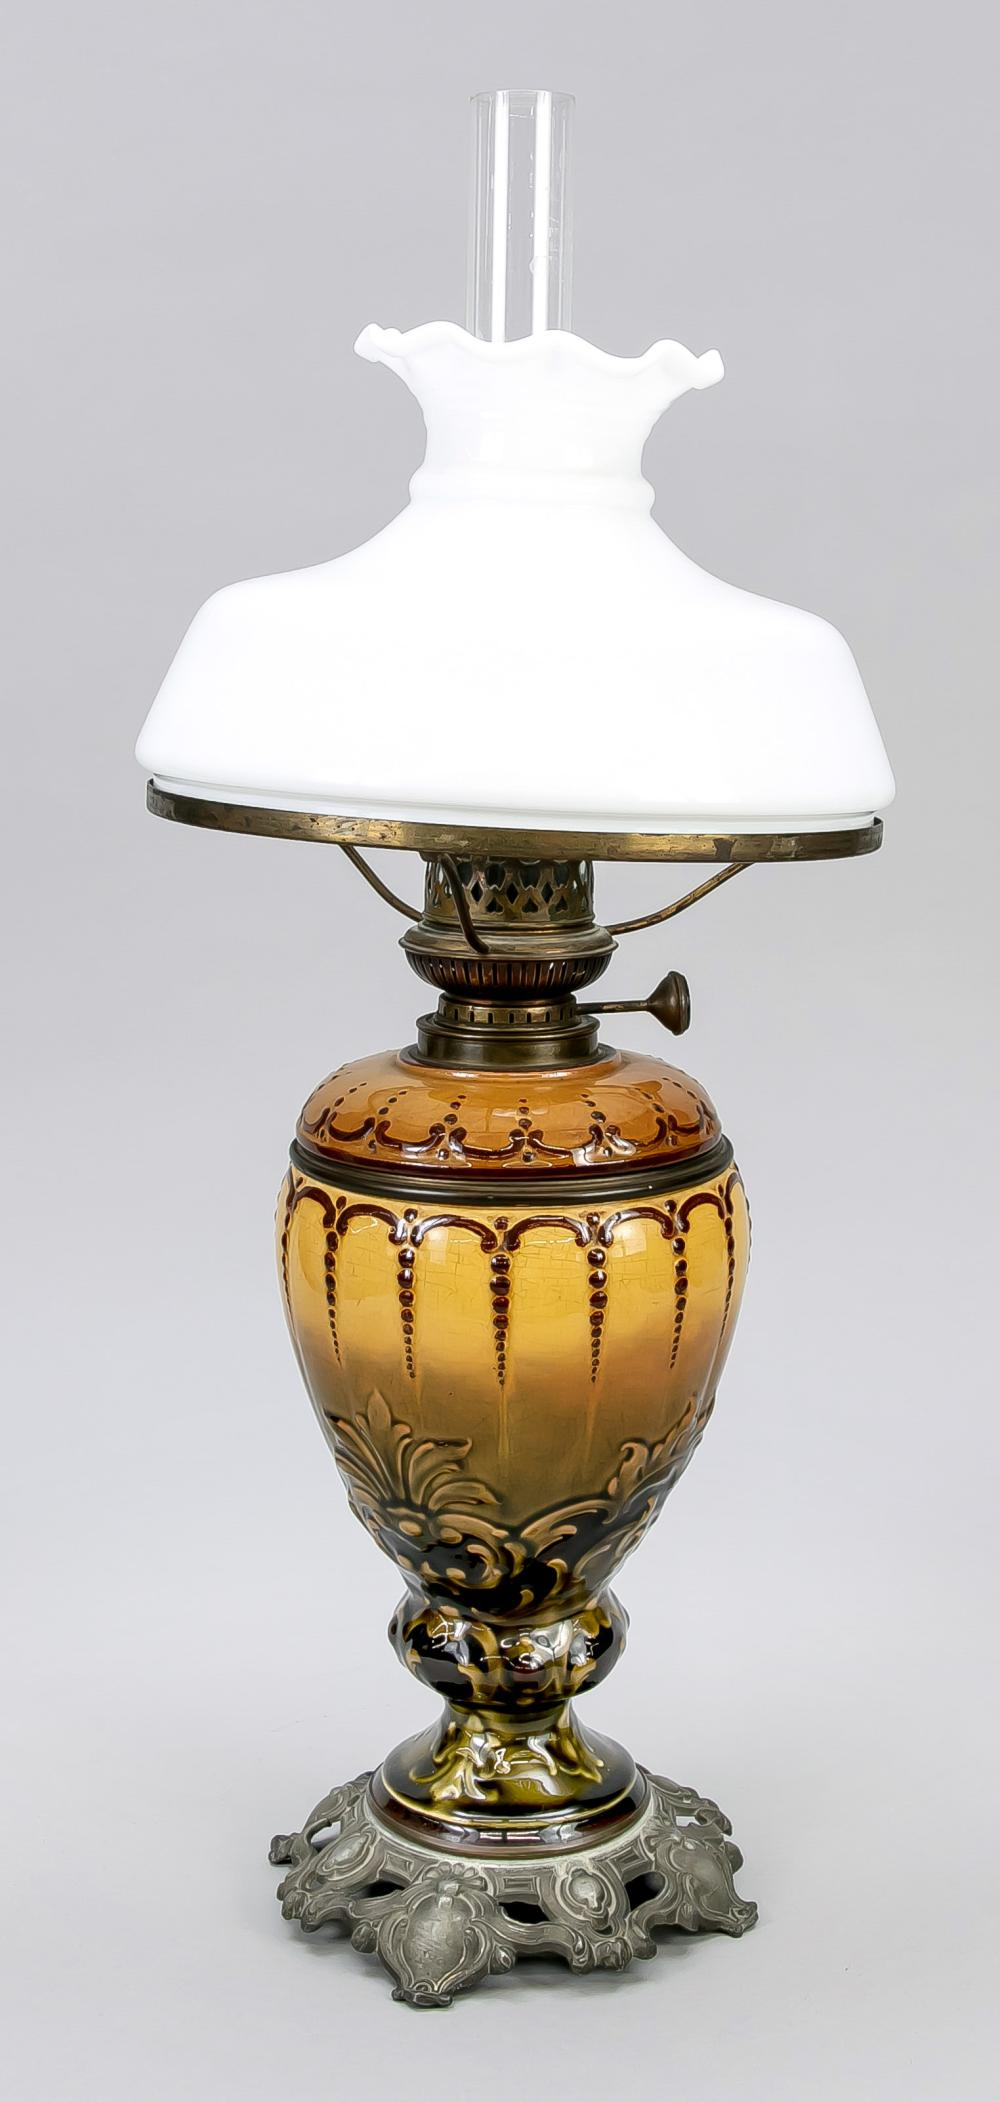 Petroleum lamp, end of the 19th c